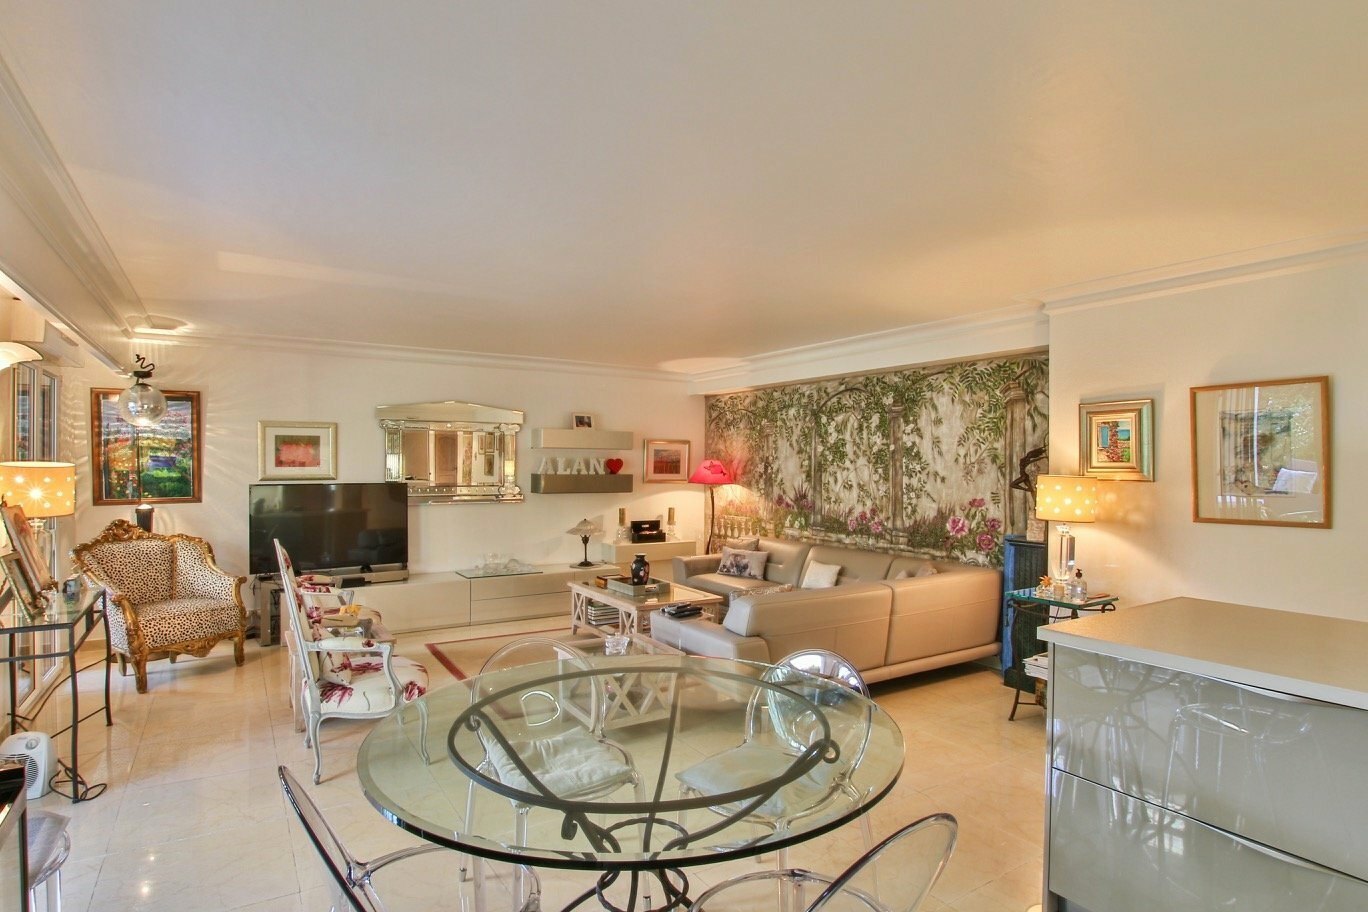 Apartment in Antibes, Provence-Alpes-Côte d'Azur, France 1 - 11189604